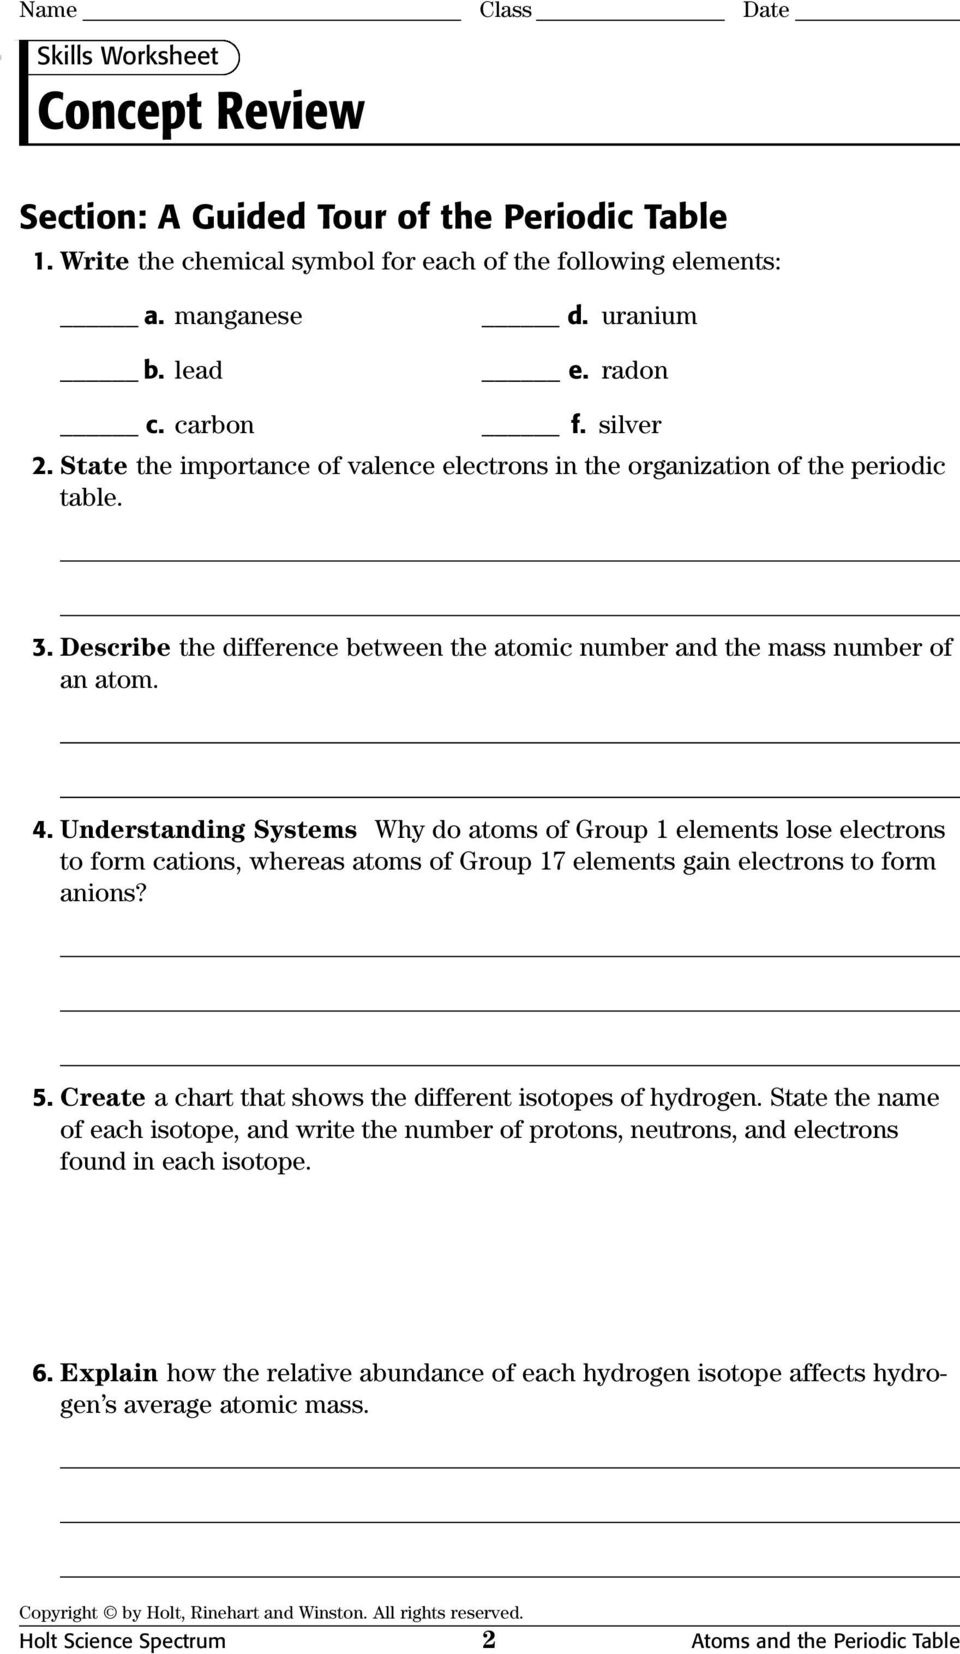 Physical science concept review worksheets with answer keys pdf understanding systems why do atoms of group 1 elements lose electrons to form cations whereas urtaz Choice Image